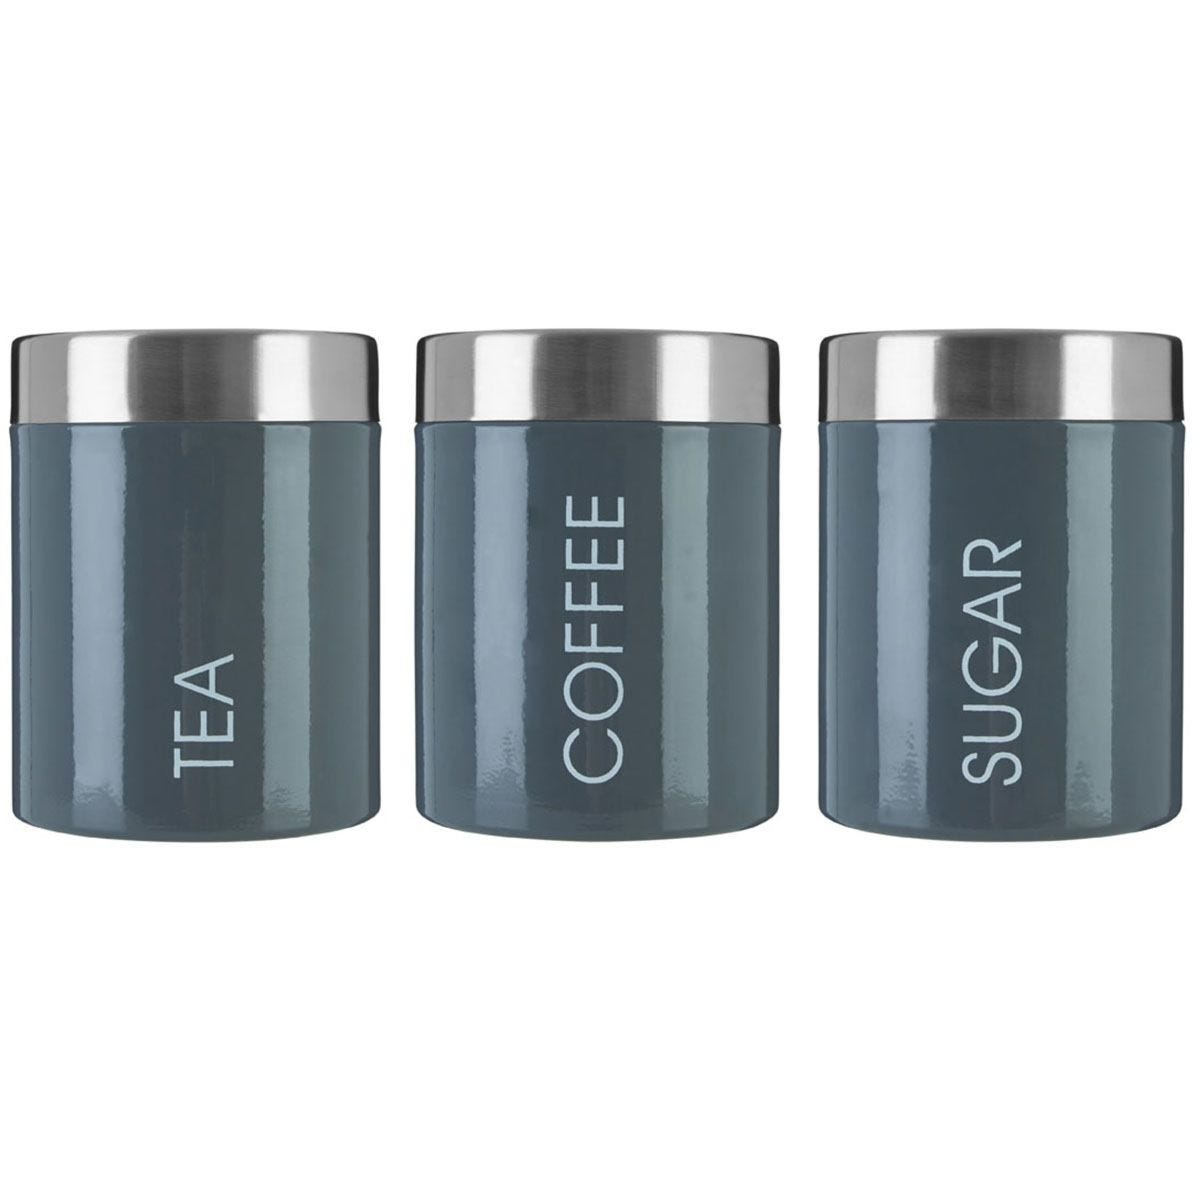 Premier Housewares Grey Liberty Canisters - Set of 3